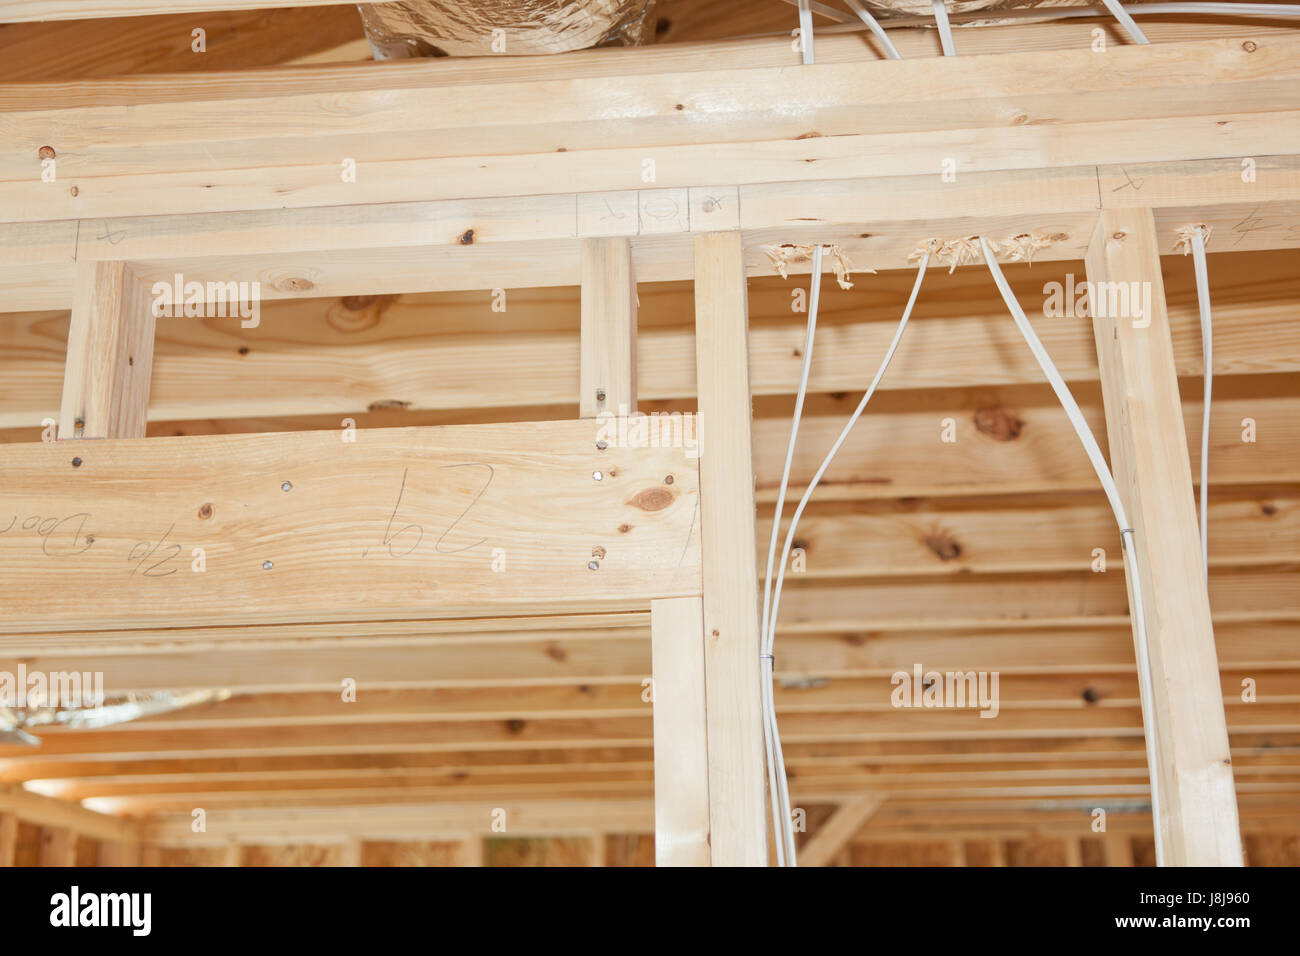 hight resolution of new home framing with electrical wires